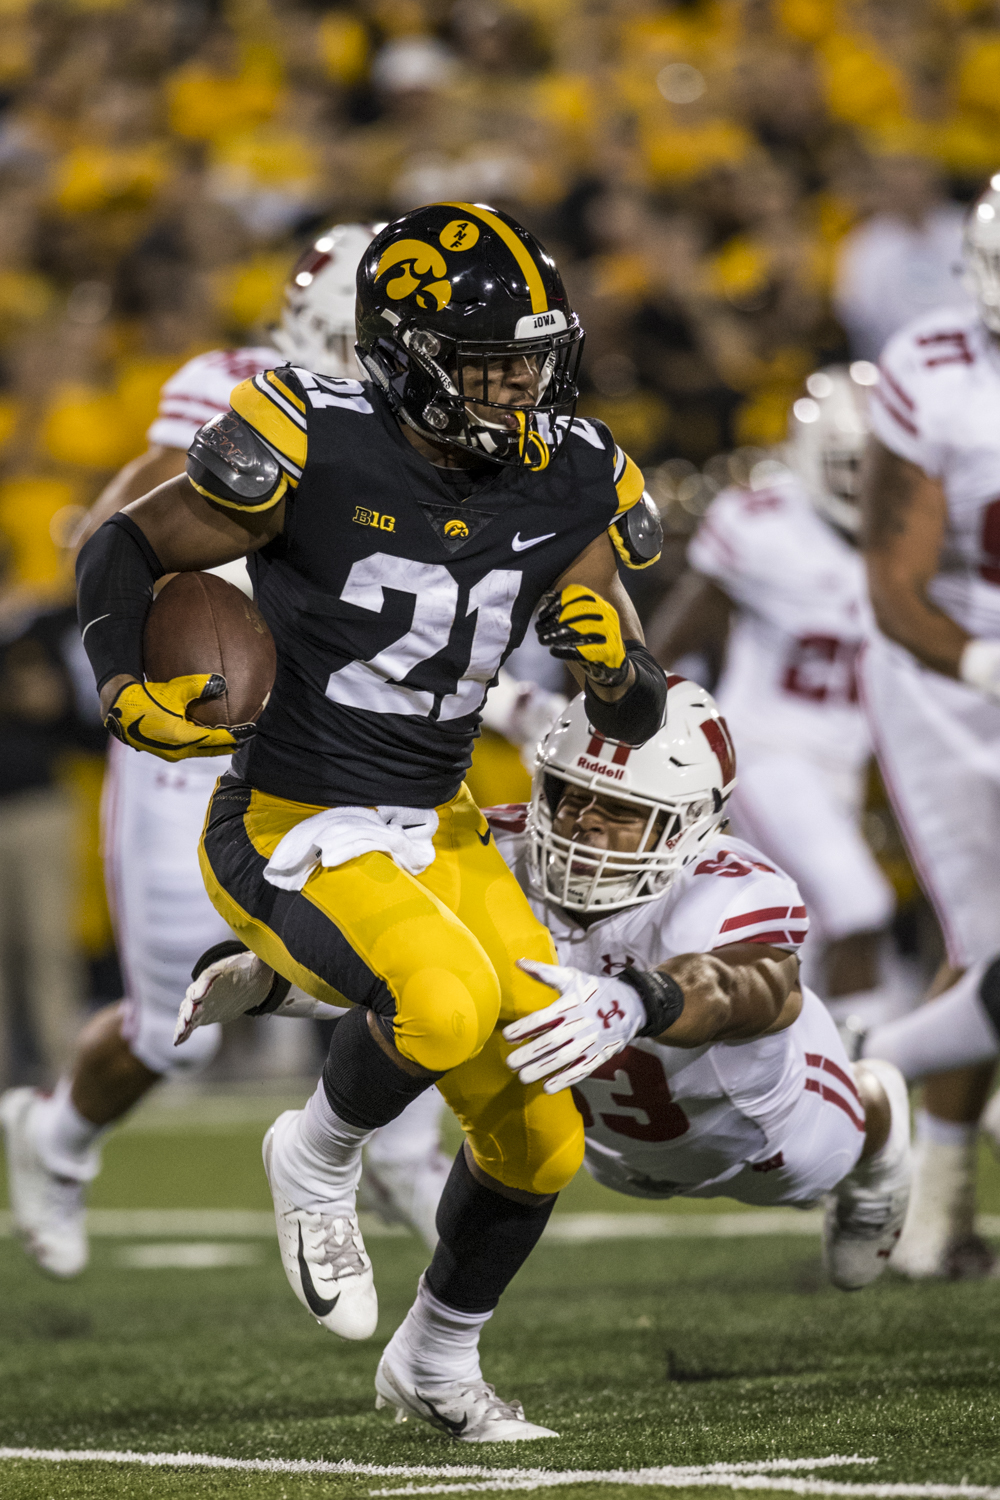 Iowa+running+back+Ivory+Kelly-Martin+carries+the+ball+during+Iowa%27s+game+against+Wisconsin+at+Kinnick+Stadium+on+Saturday%2C+Sept.+22%2C+2018.+The+Badgers+defeated+the+Hawkeyes+28-17.